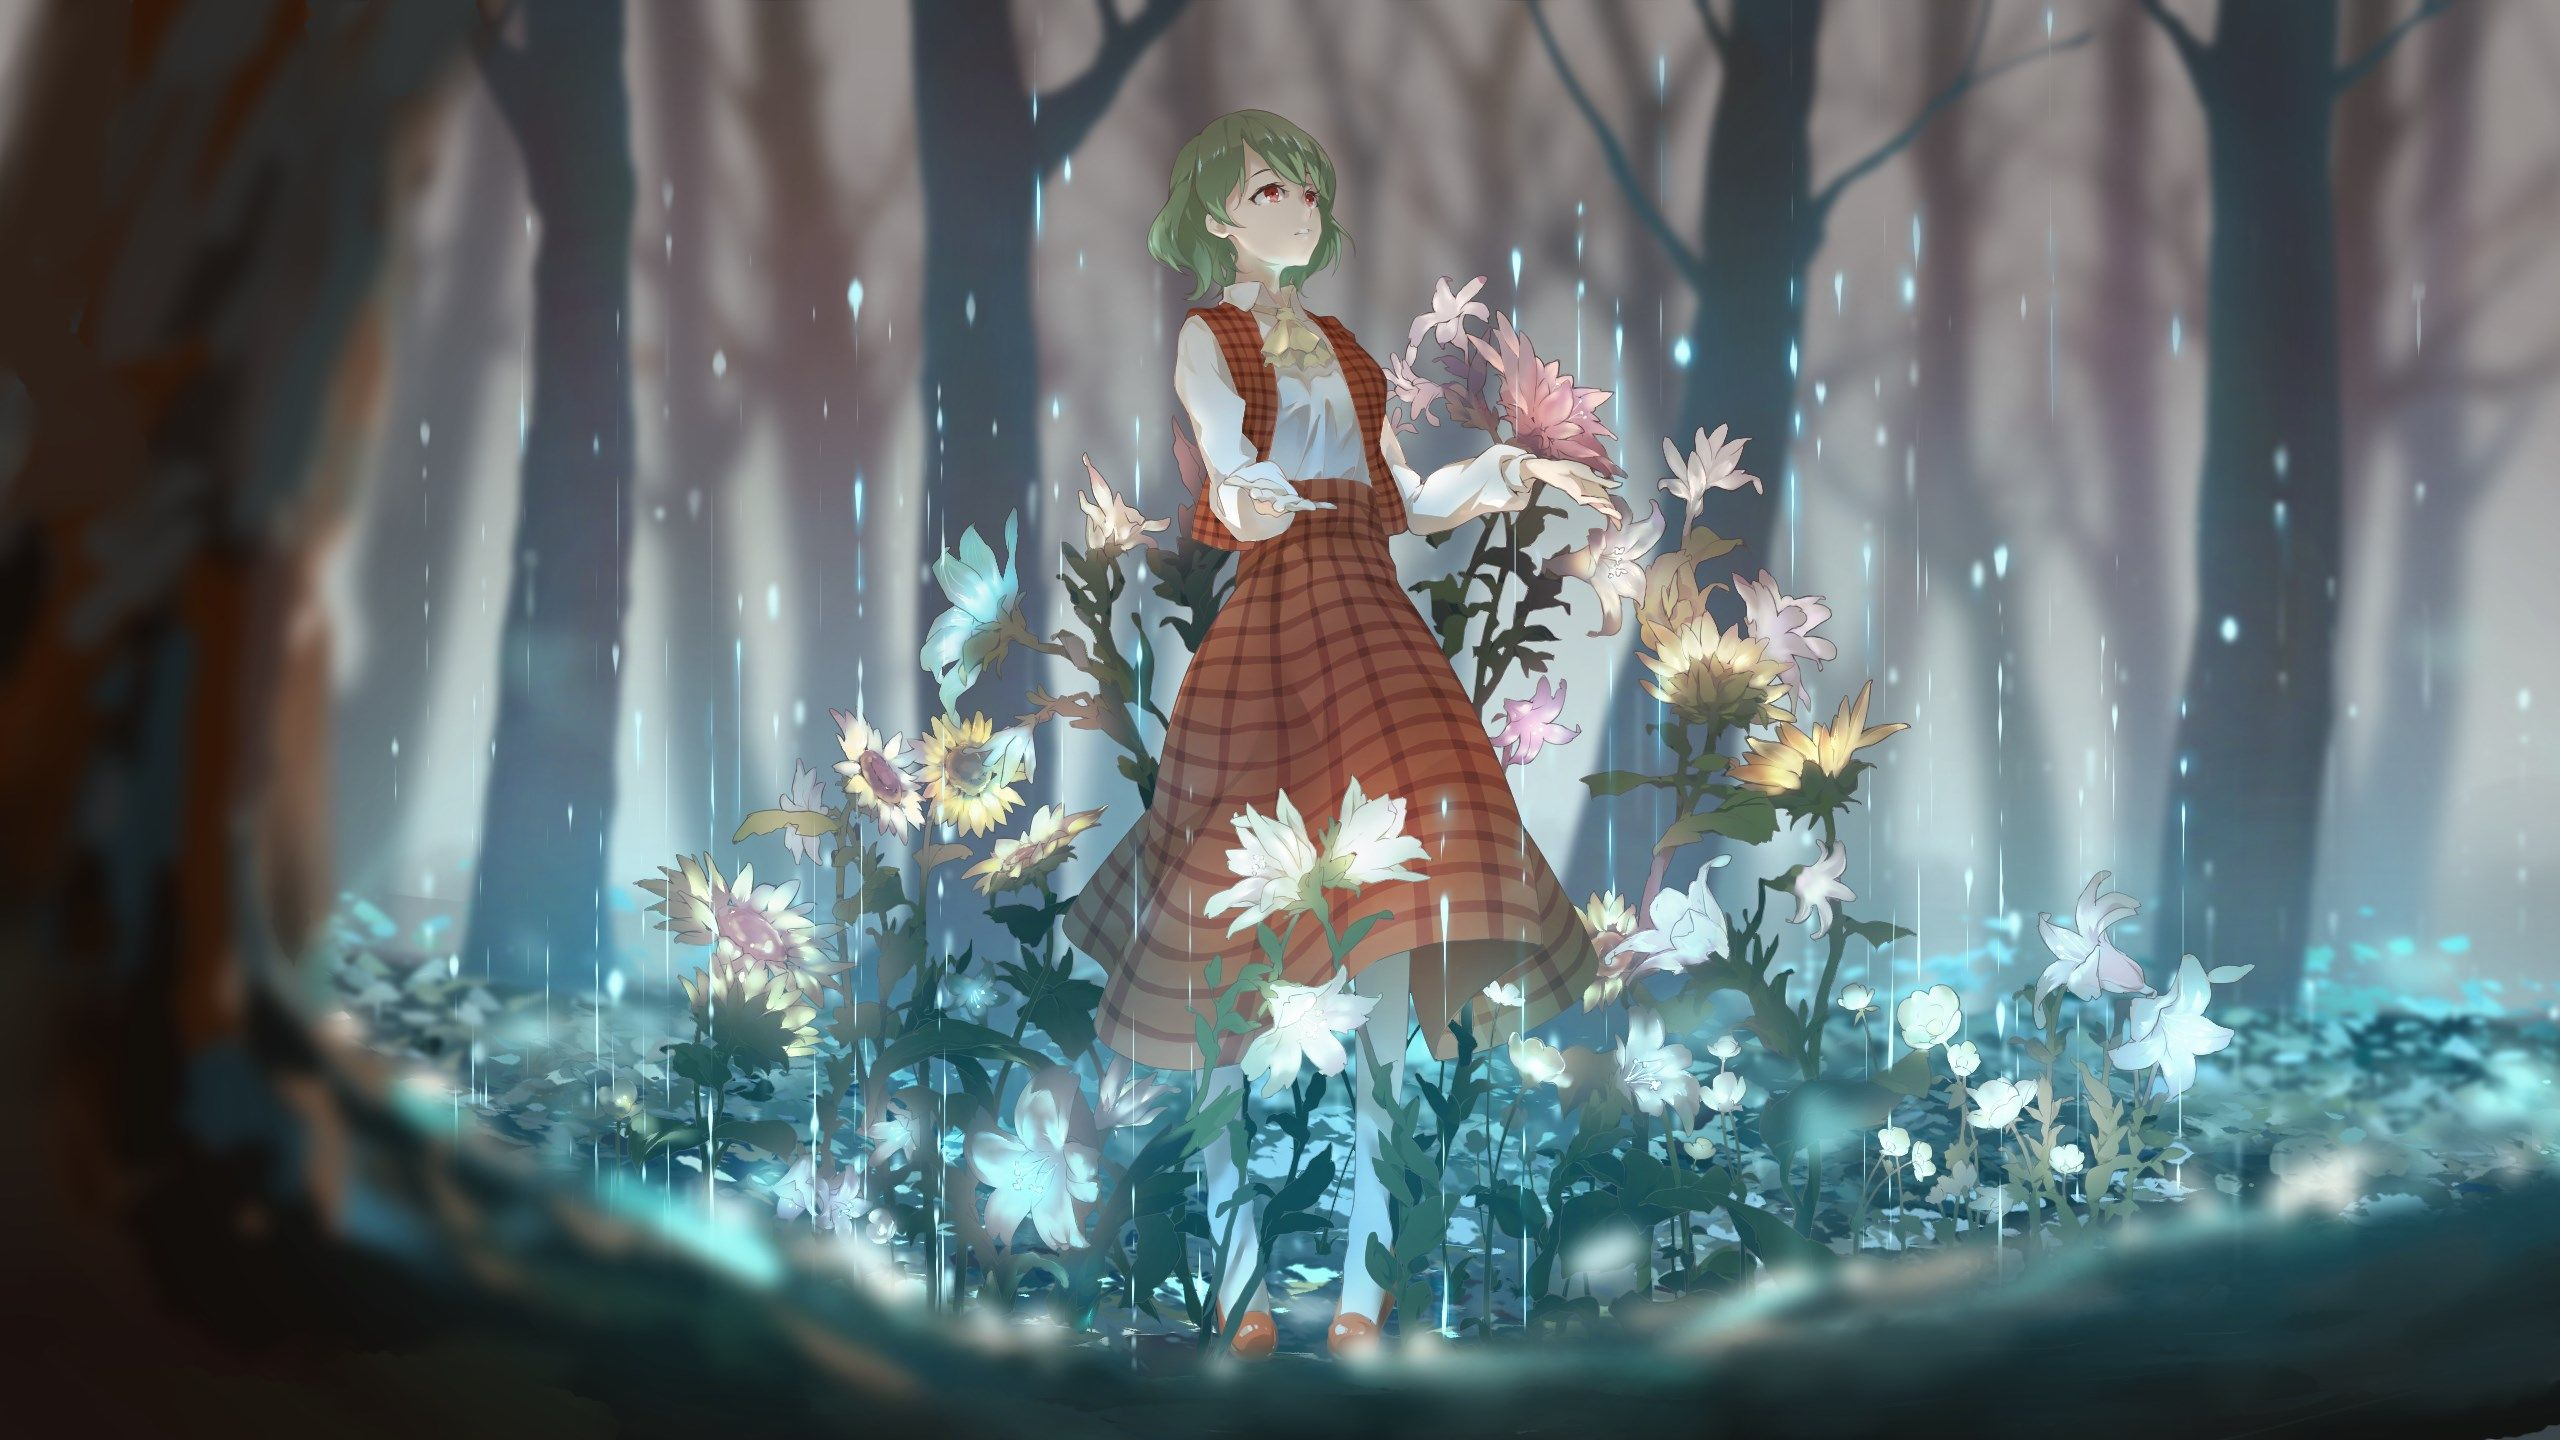 good anime backgrounds for steam